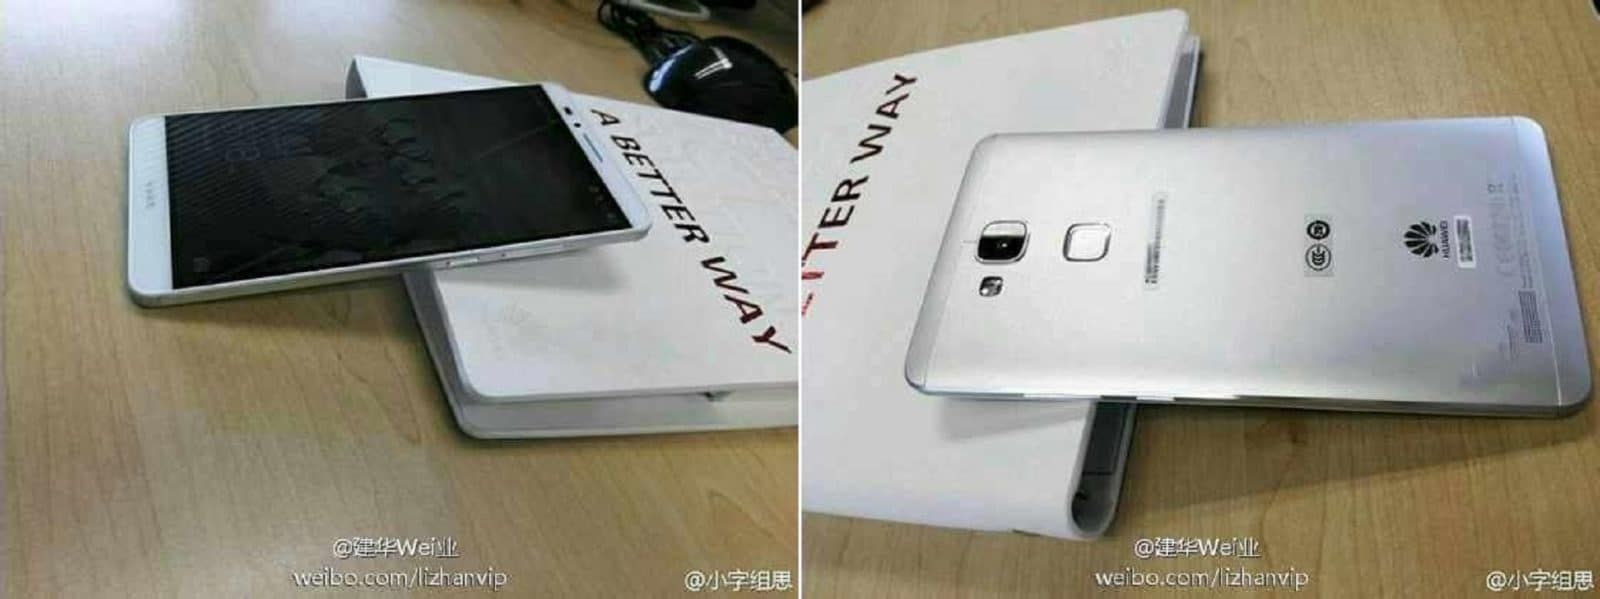 huawei_ascend7_weibo_leaked_images_combined